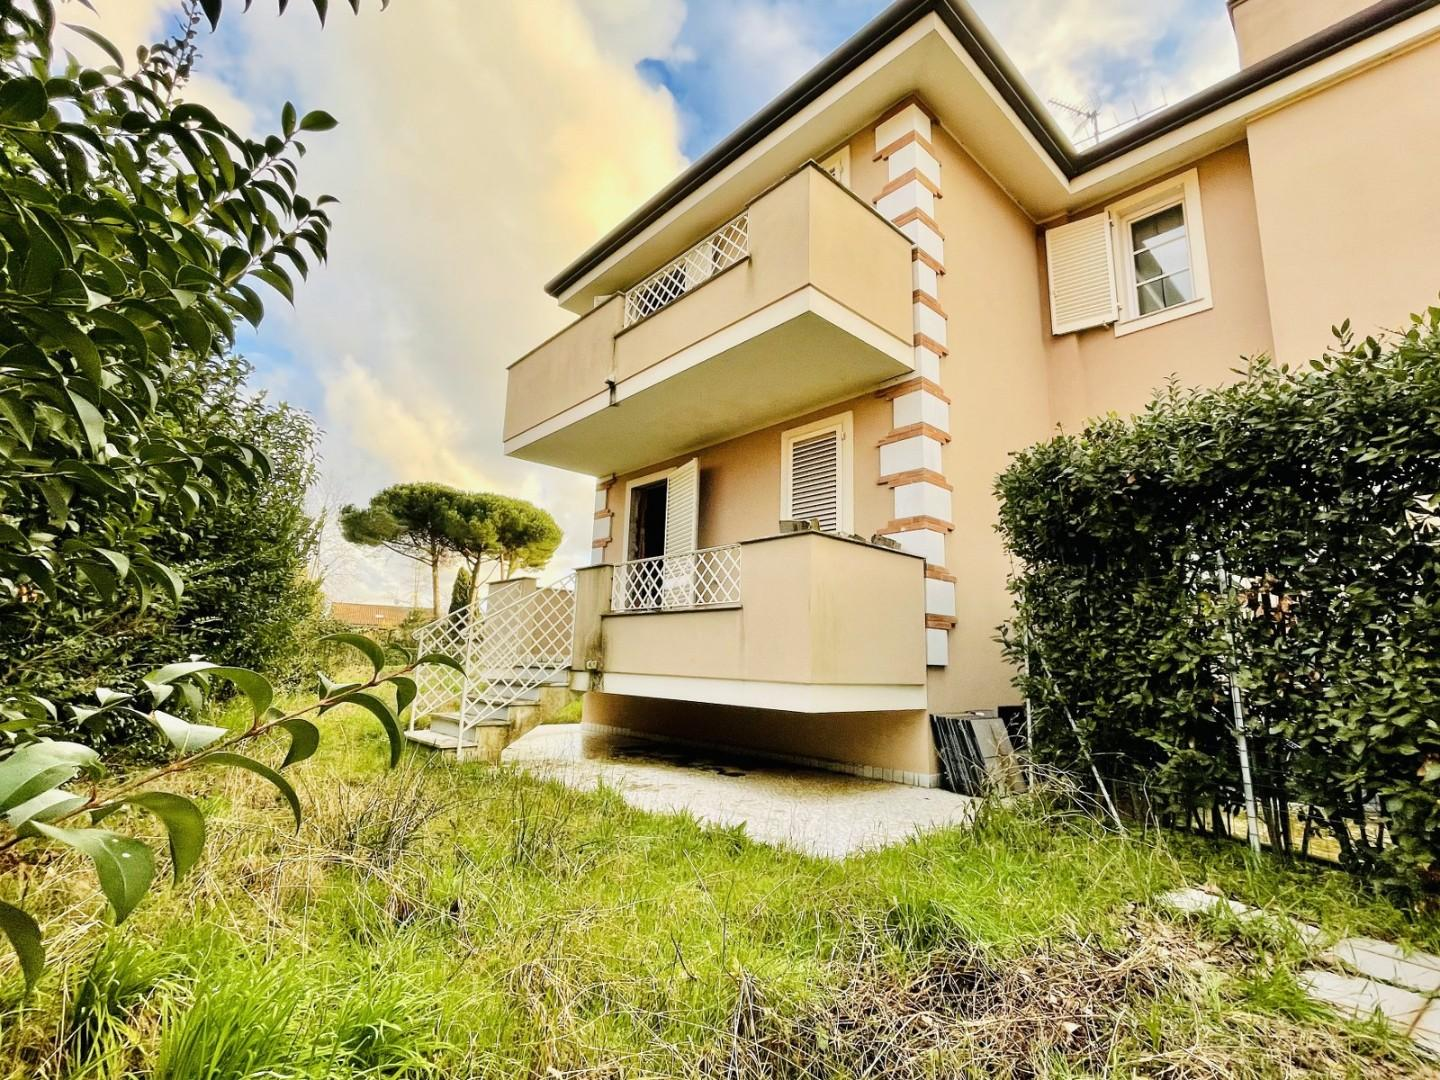 Semi-detached house for sale in Camaiore (LU)